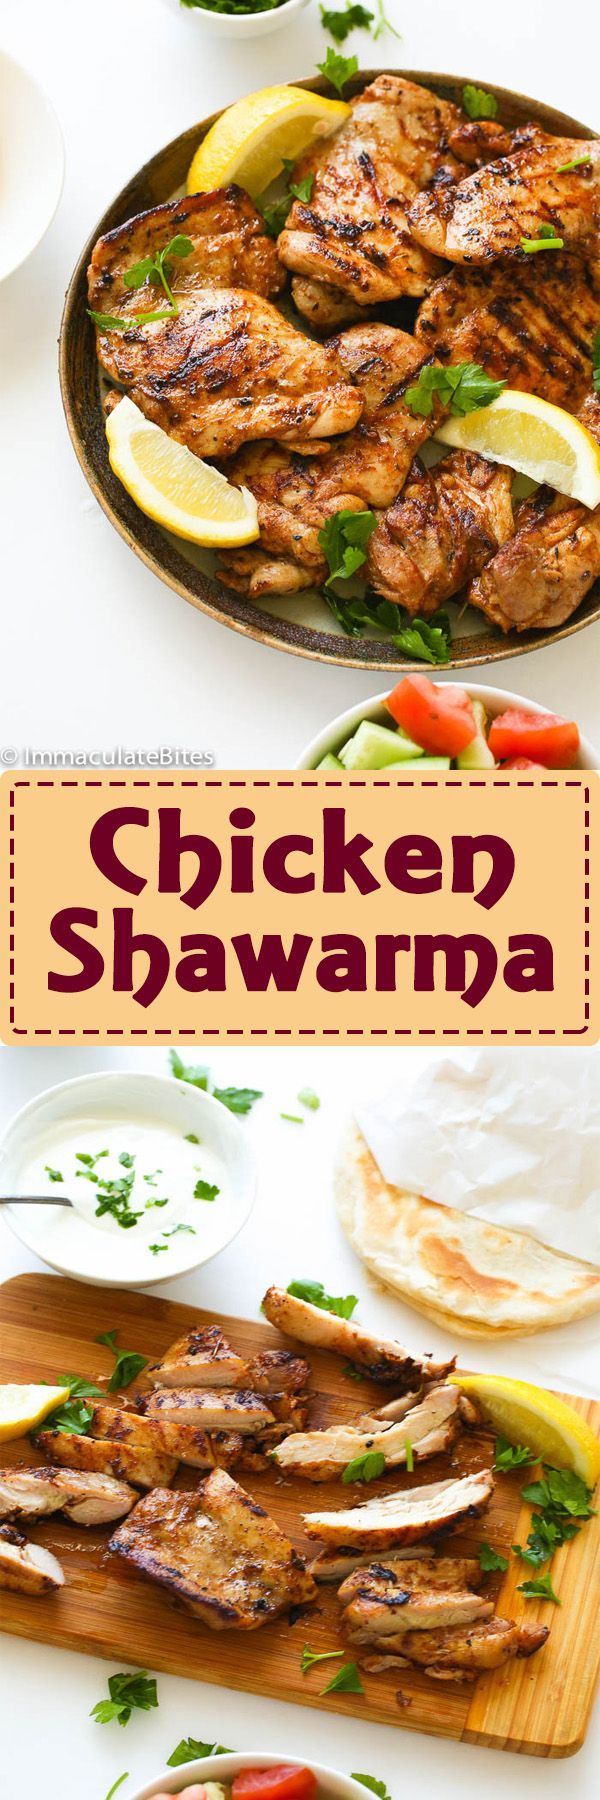 392 best caribbean recipes images on pinterest caribbean recipes chicken shawarma incredibly flavorful chicken marinated in aromatic yogurt marinate that is bursting with middle forumfinder Images